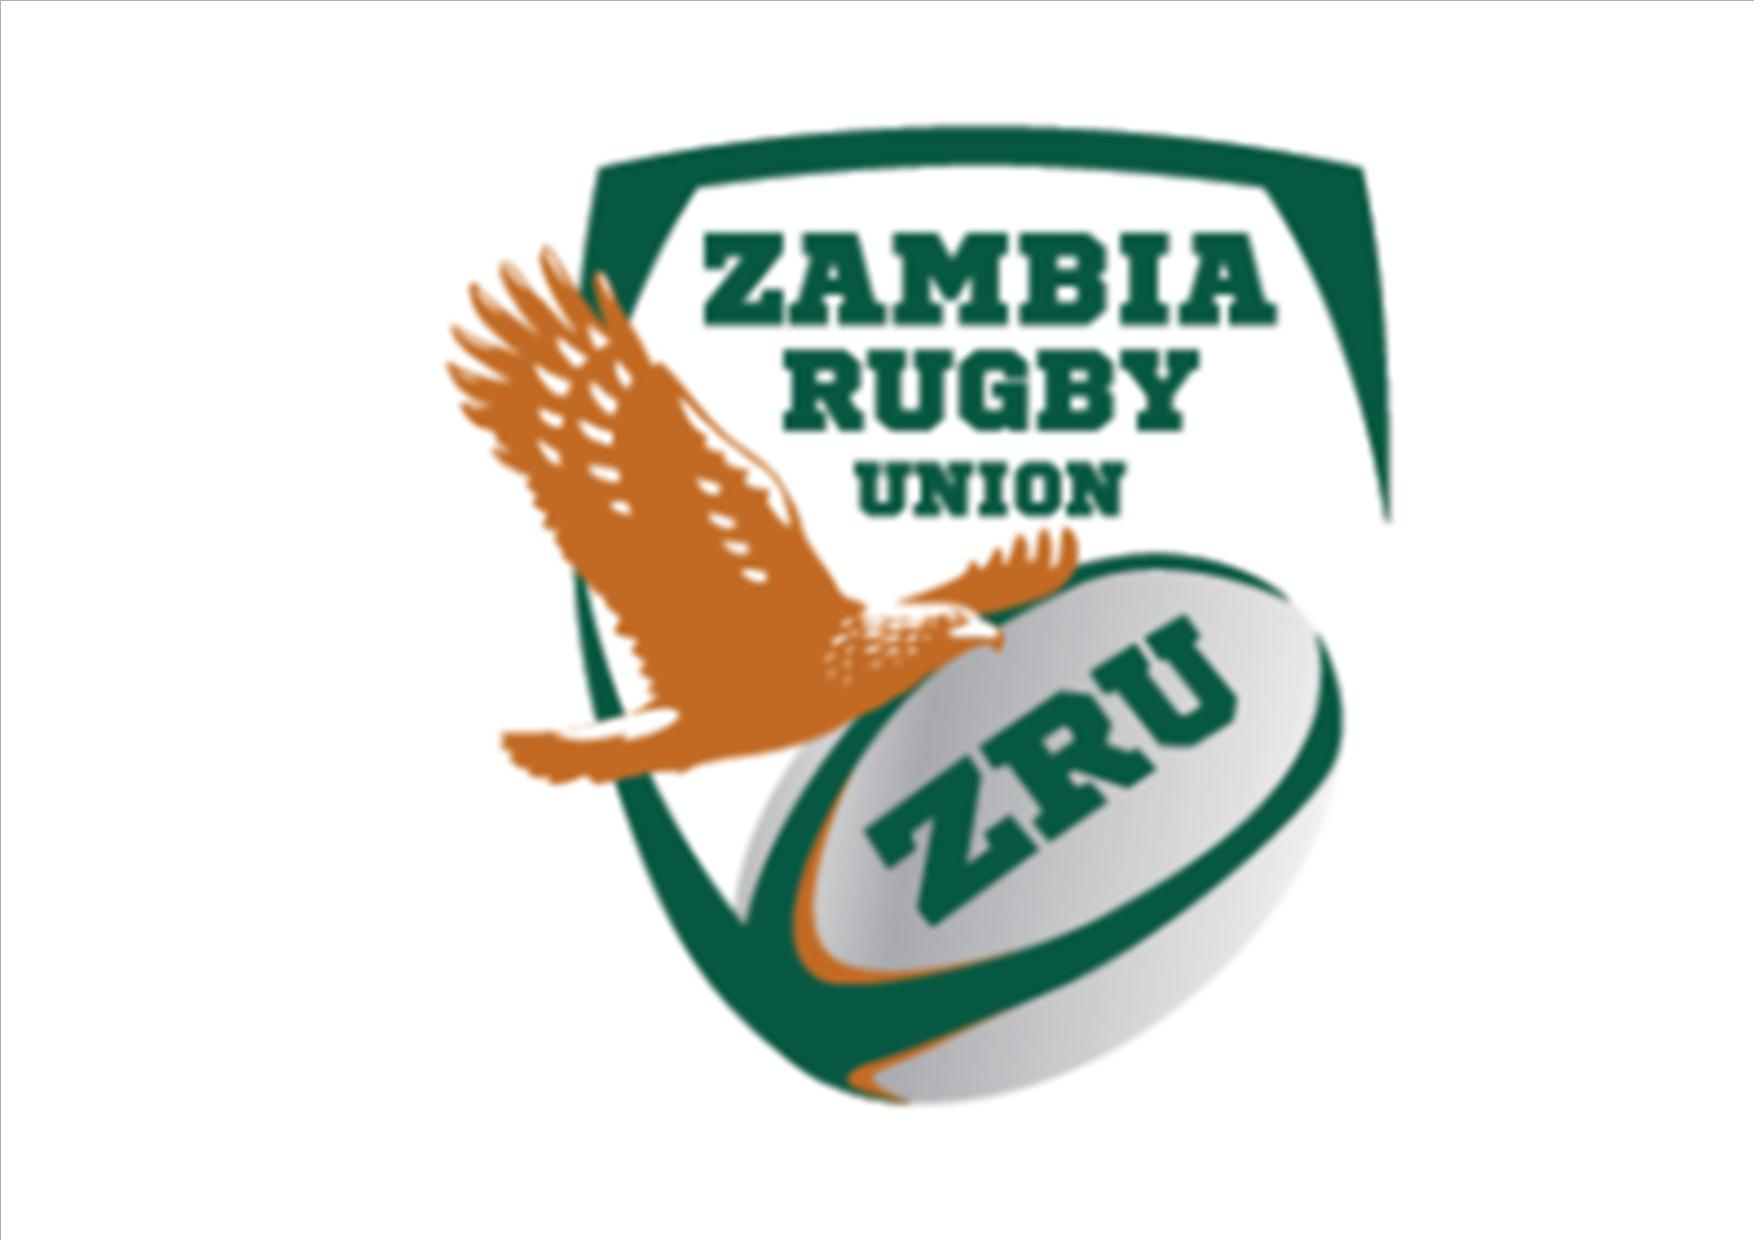 Zambia Rugby poised to restart